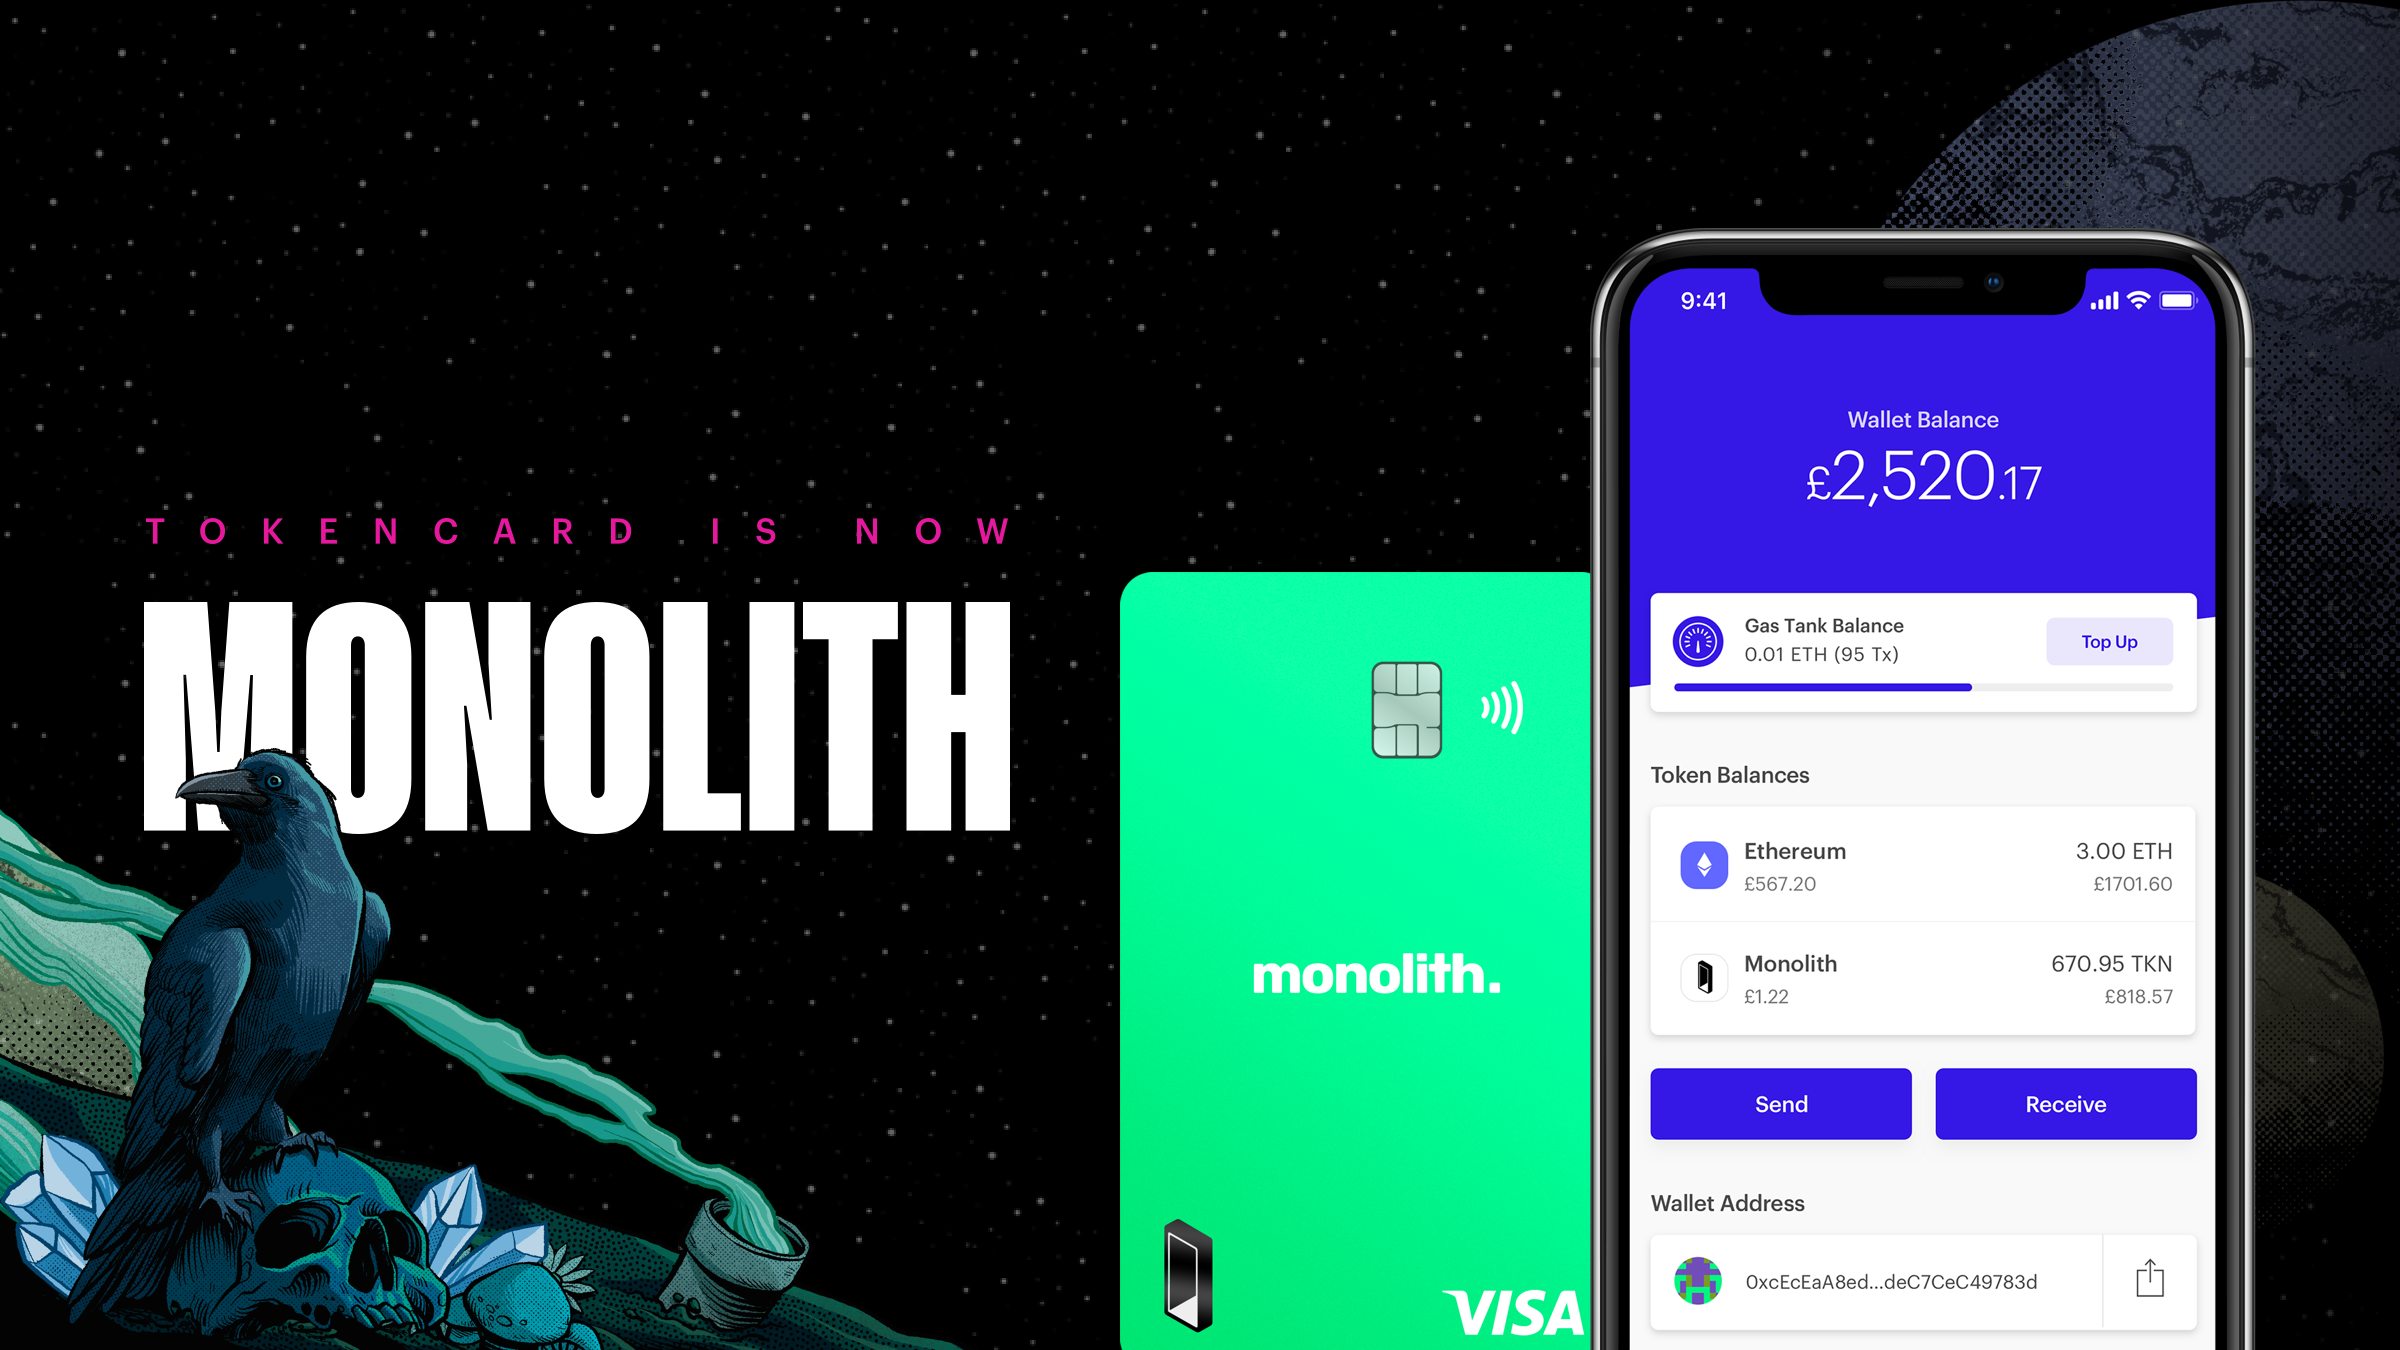 TokenCard is now Monolith—featuring the Monolith Visa Card and the app